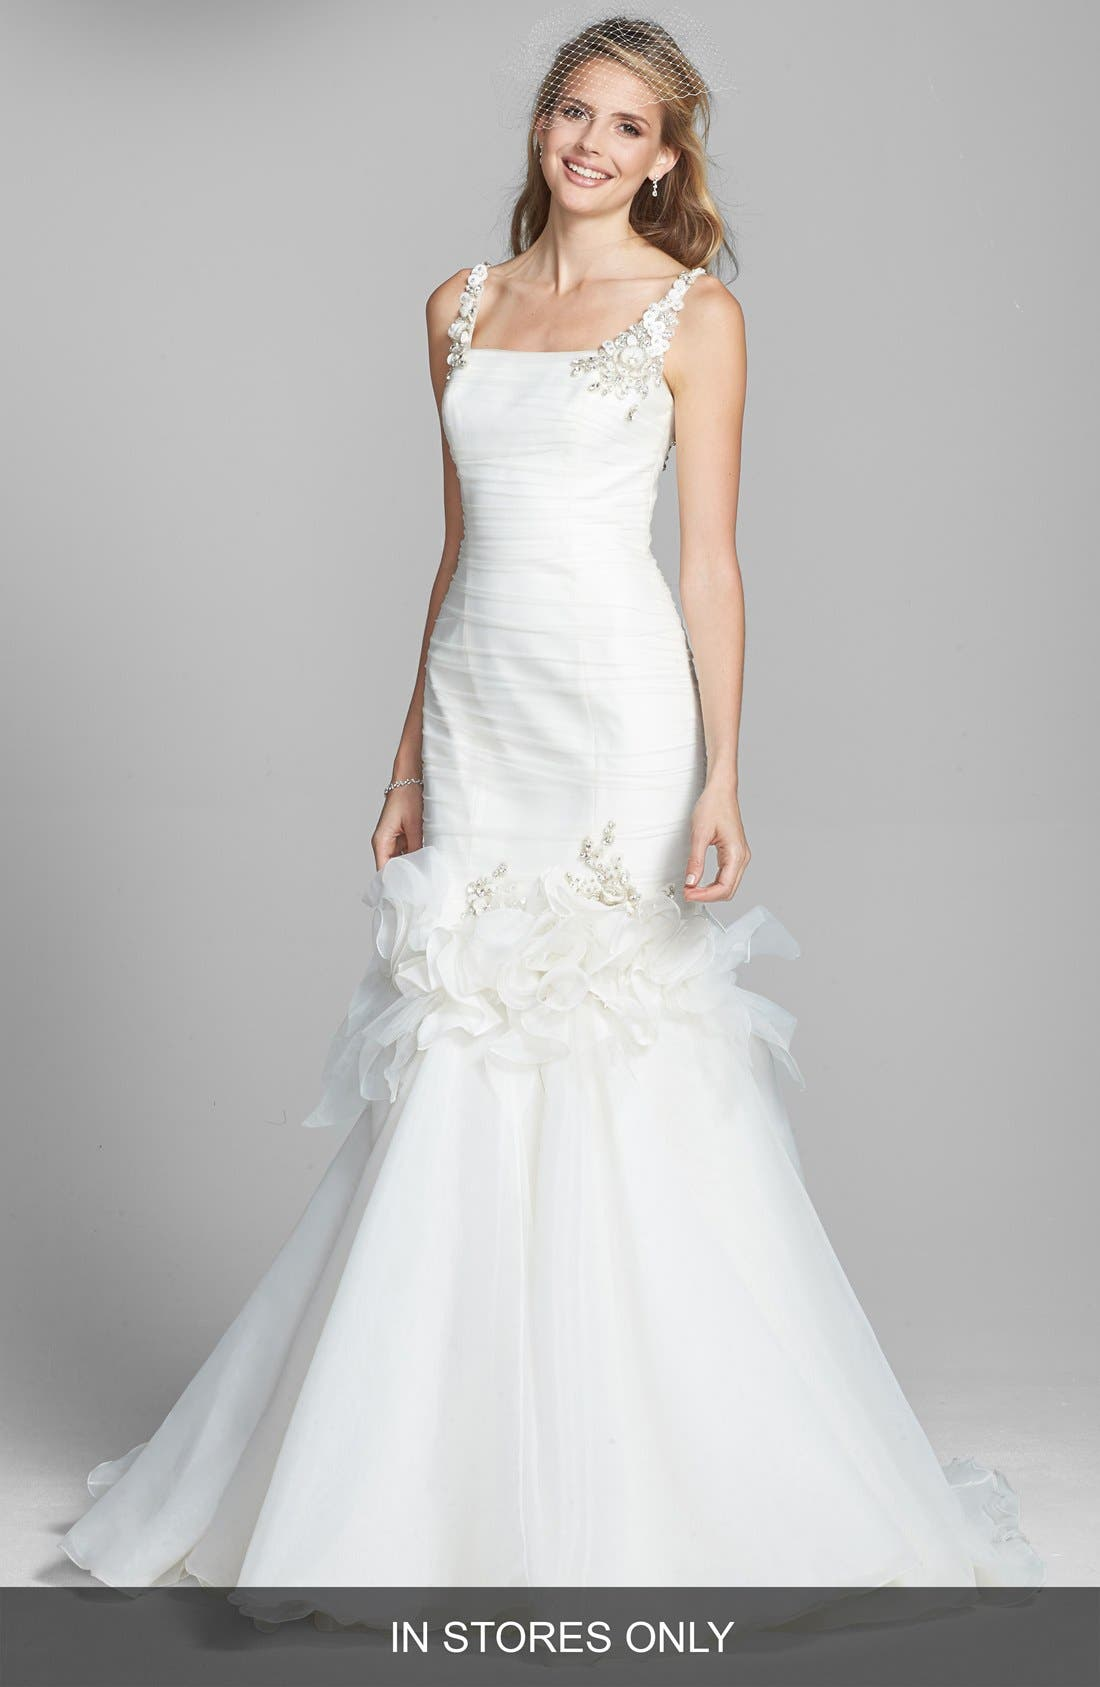 Alternate Image 1 Selected - Badgley Mischka Bridal 'Grace' Embellished Tulle & Chiffon Mermaid Dress (In Stores Only)